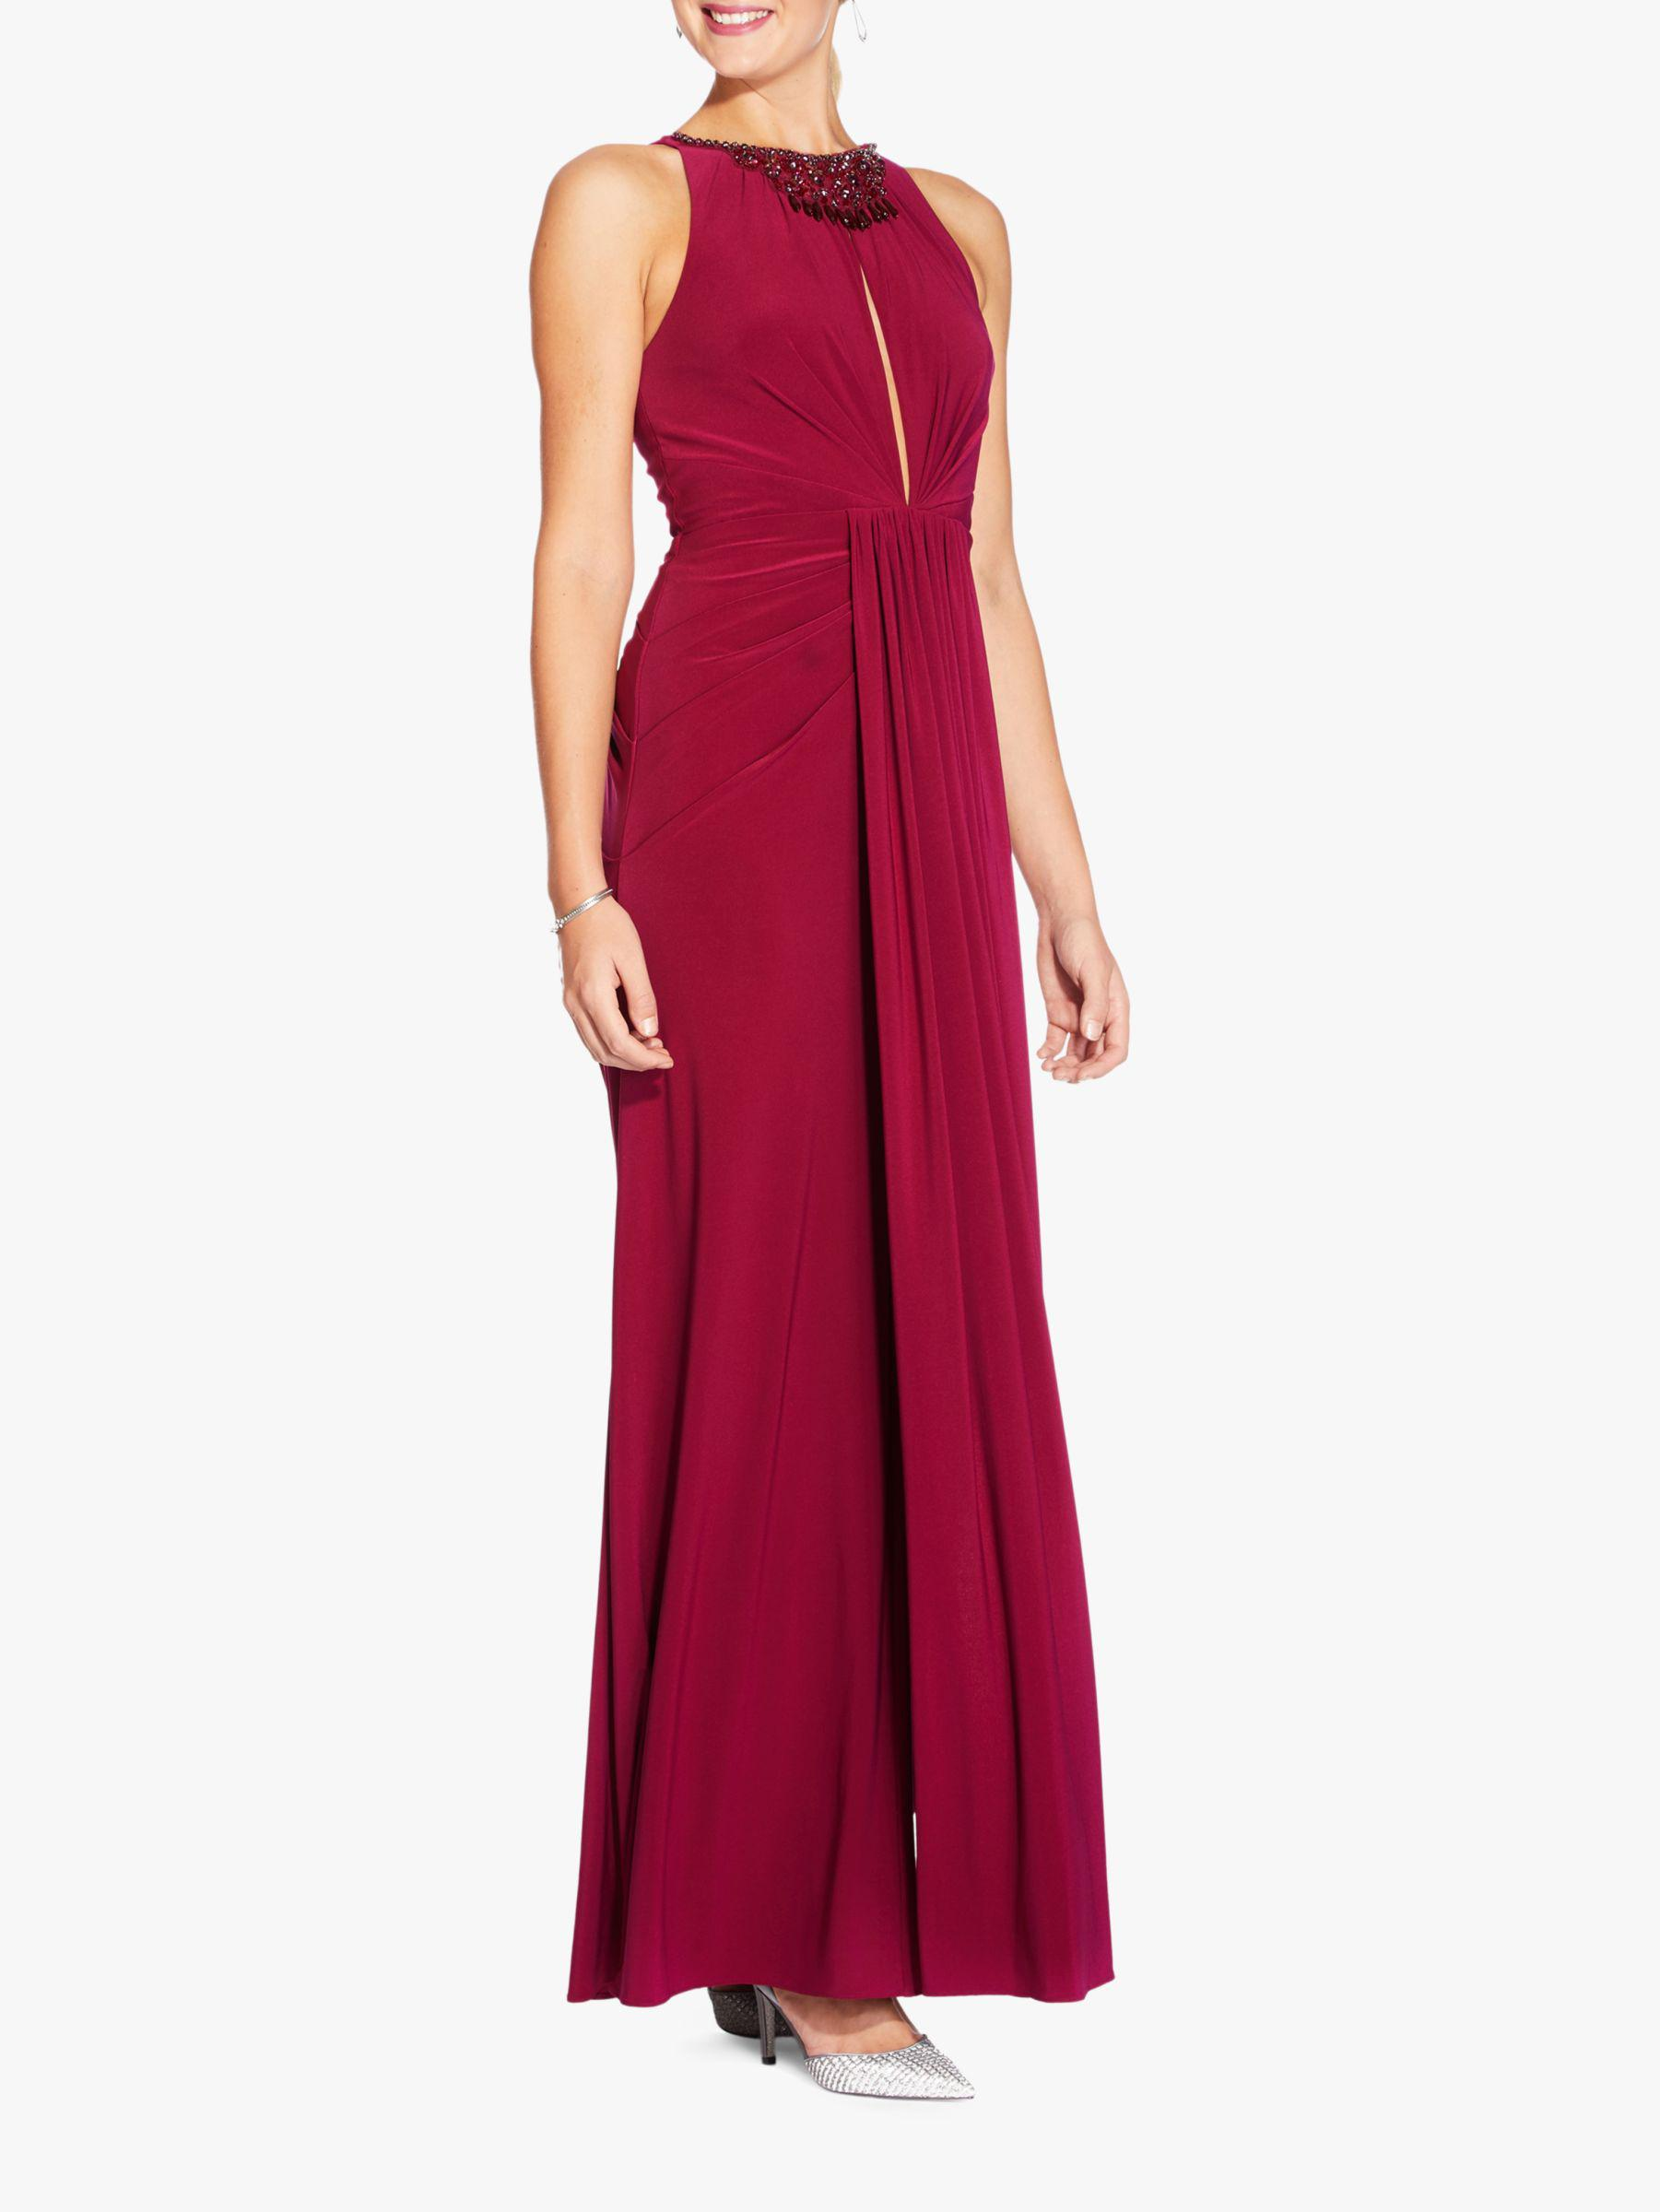 55f4065a0d5aa Adrianna Papell Matte Jersey Maxi Dress in Red - Lyst